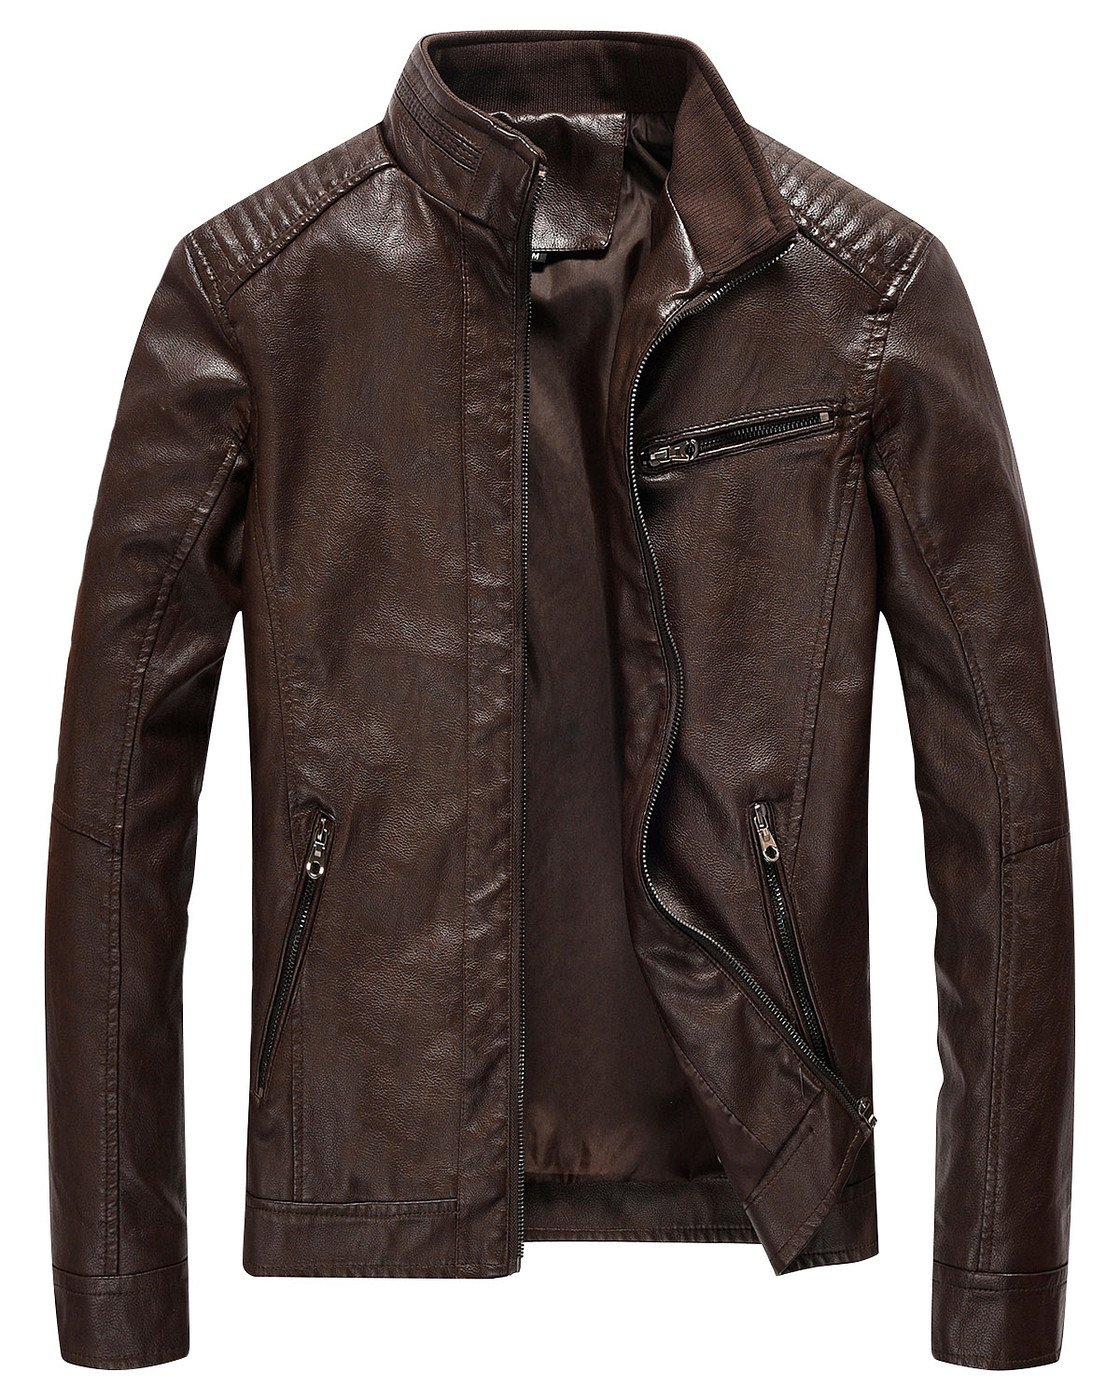 Fairylinks Leather Jacket Men Lightweight Bomber Jackets and Coats, Deep Brown